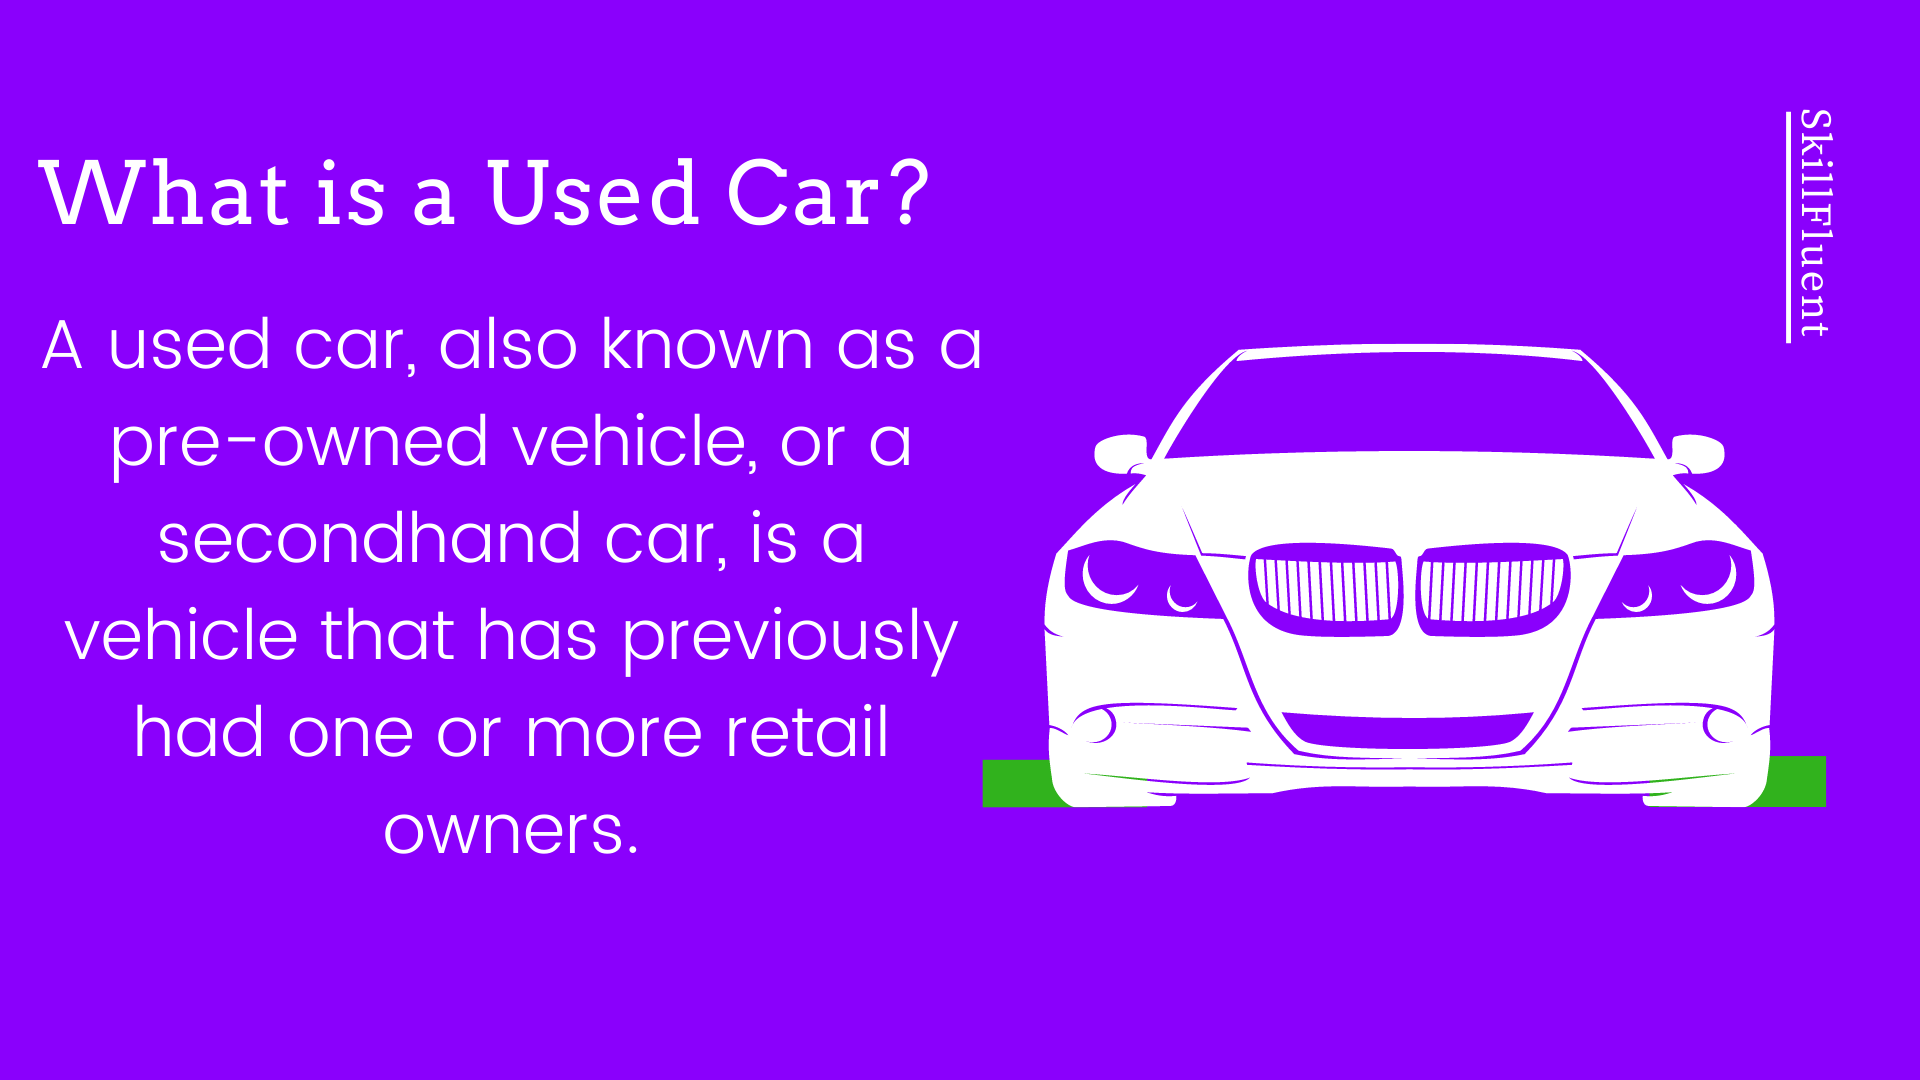 A used car, also known as a pre-owned vehicle, or a secondhand car, is a vehicle that has previously had one or more retail owners.